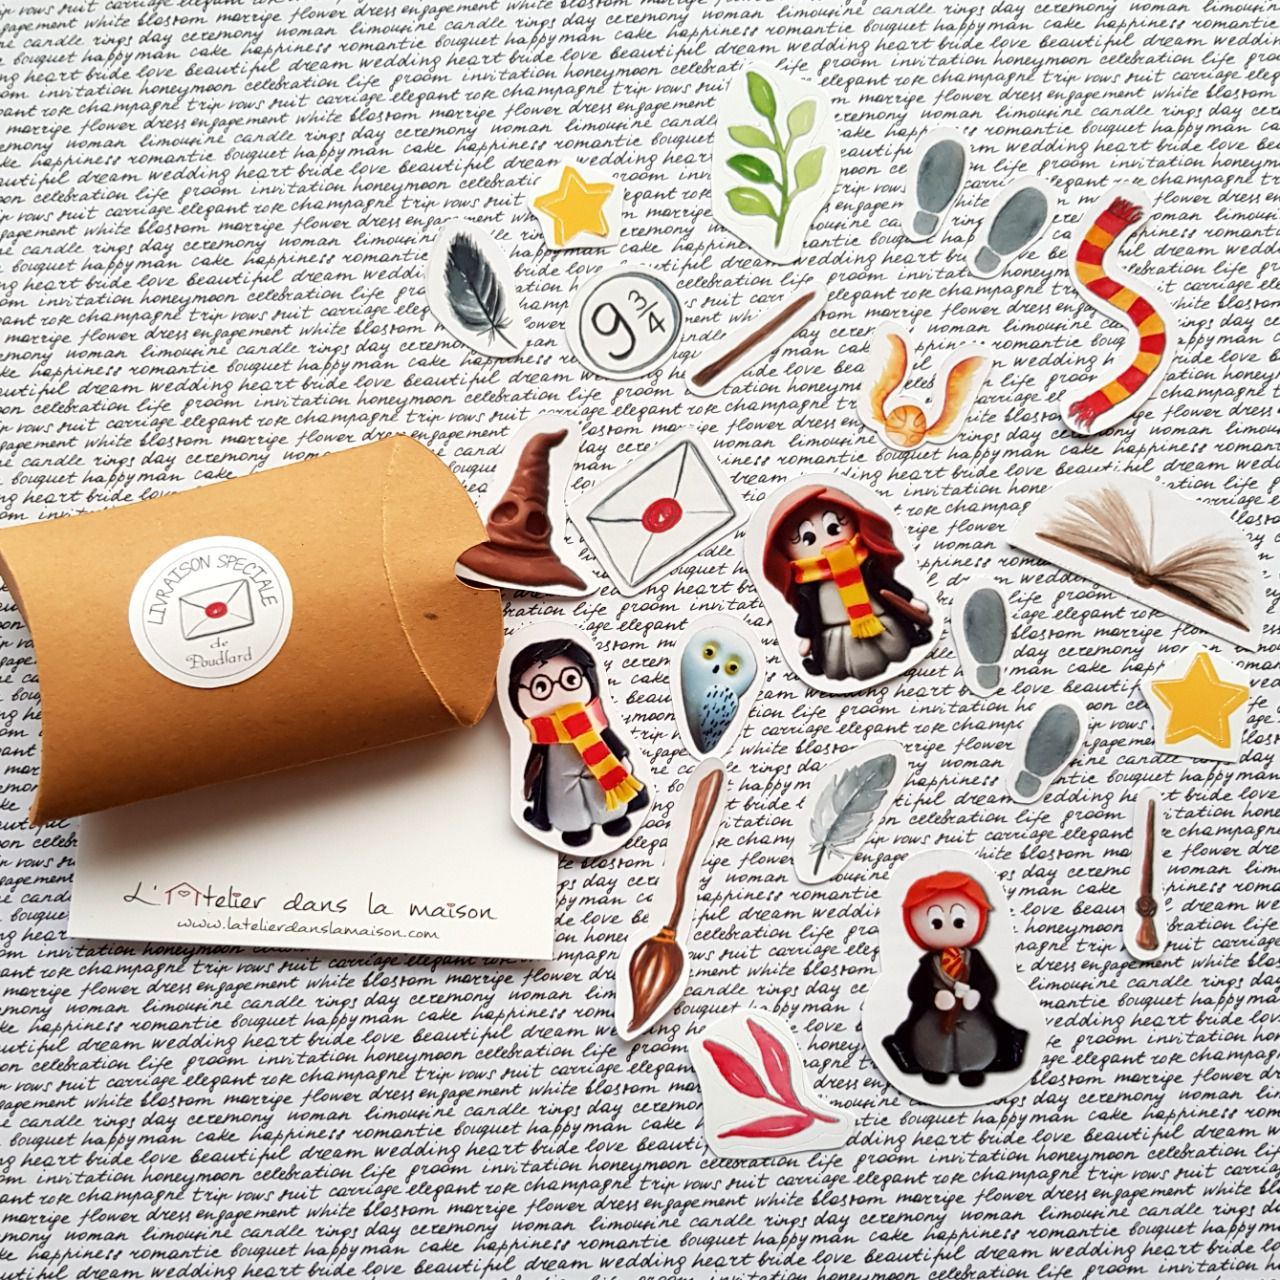 Boite de stickers inspiration Harry Potter